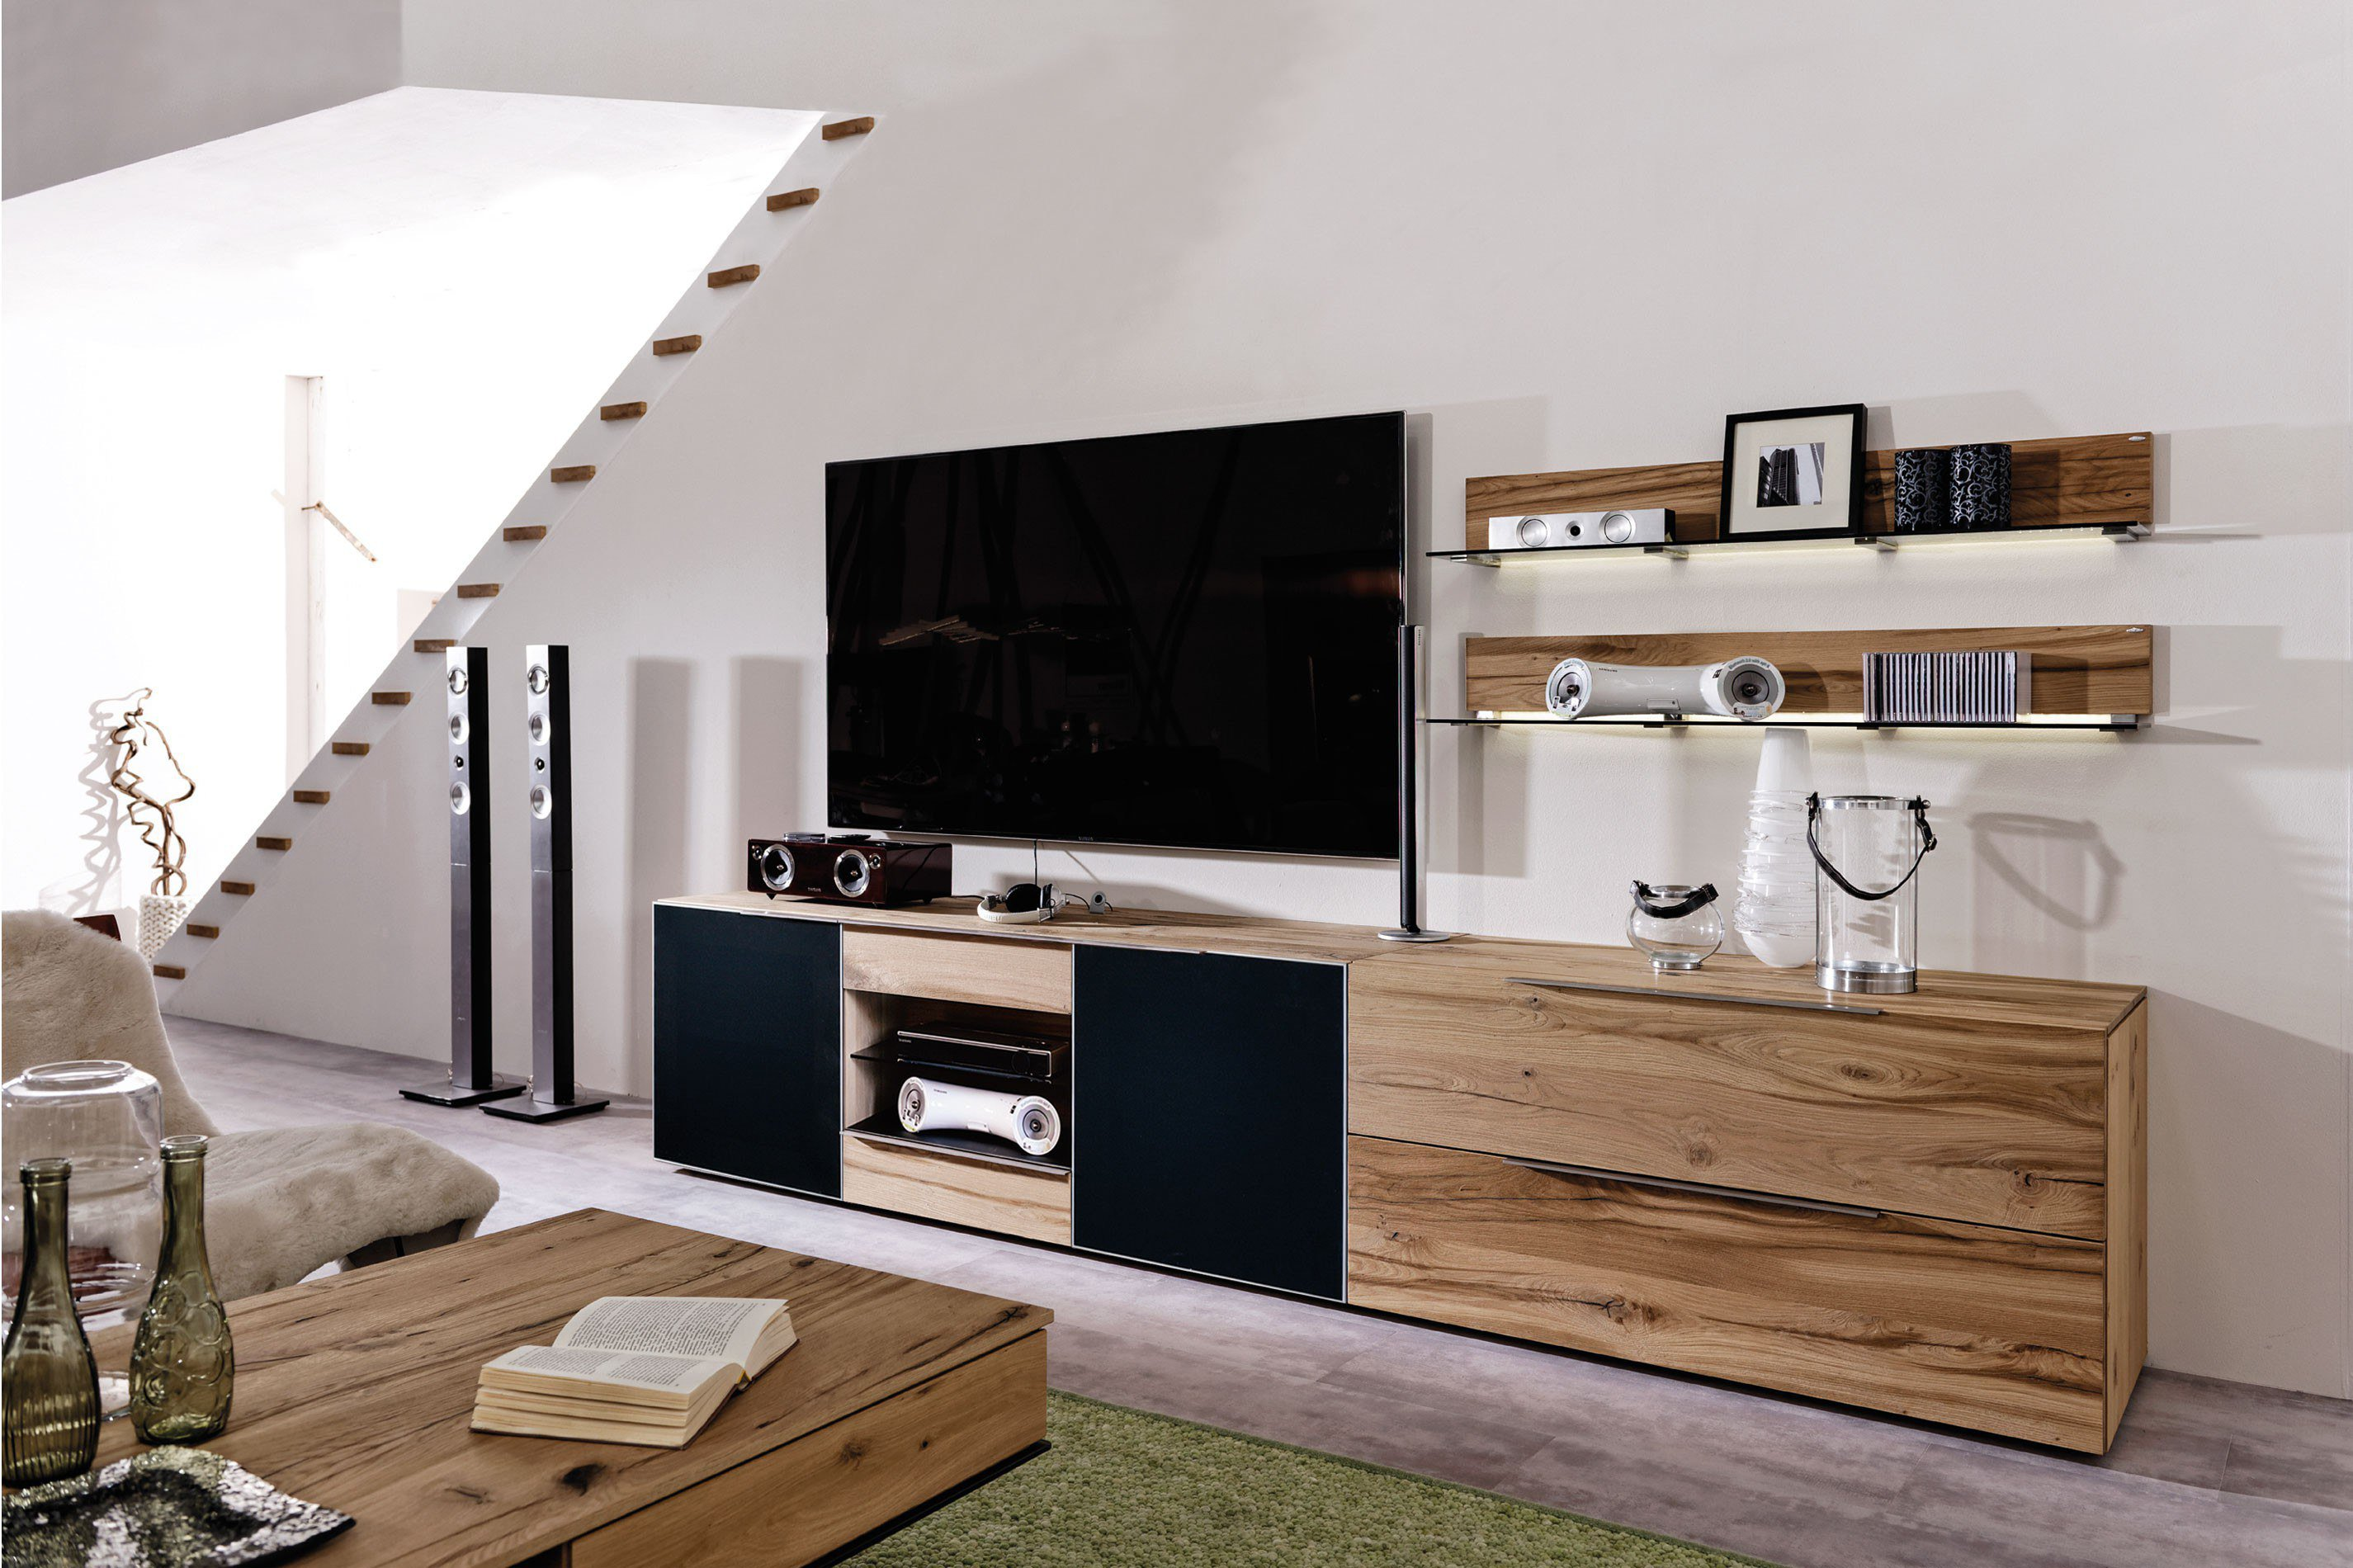 voglauer wohnwand v alpin eiche altholz akustikstoff. Black Bedroom Furniture Sets. Home Design Ideas